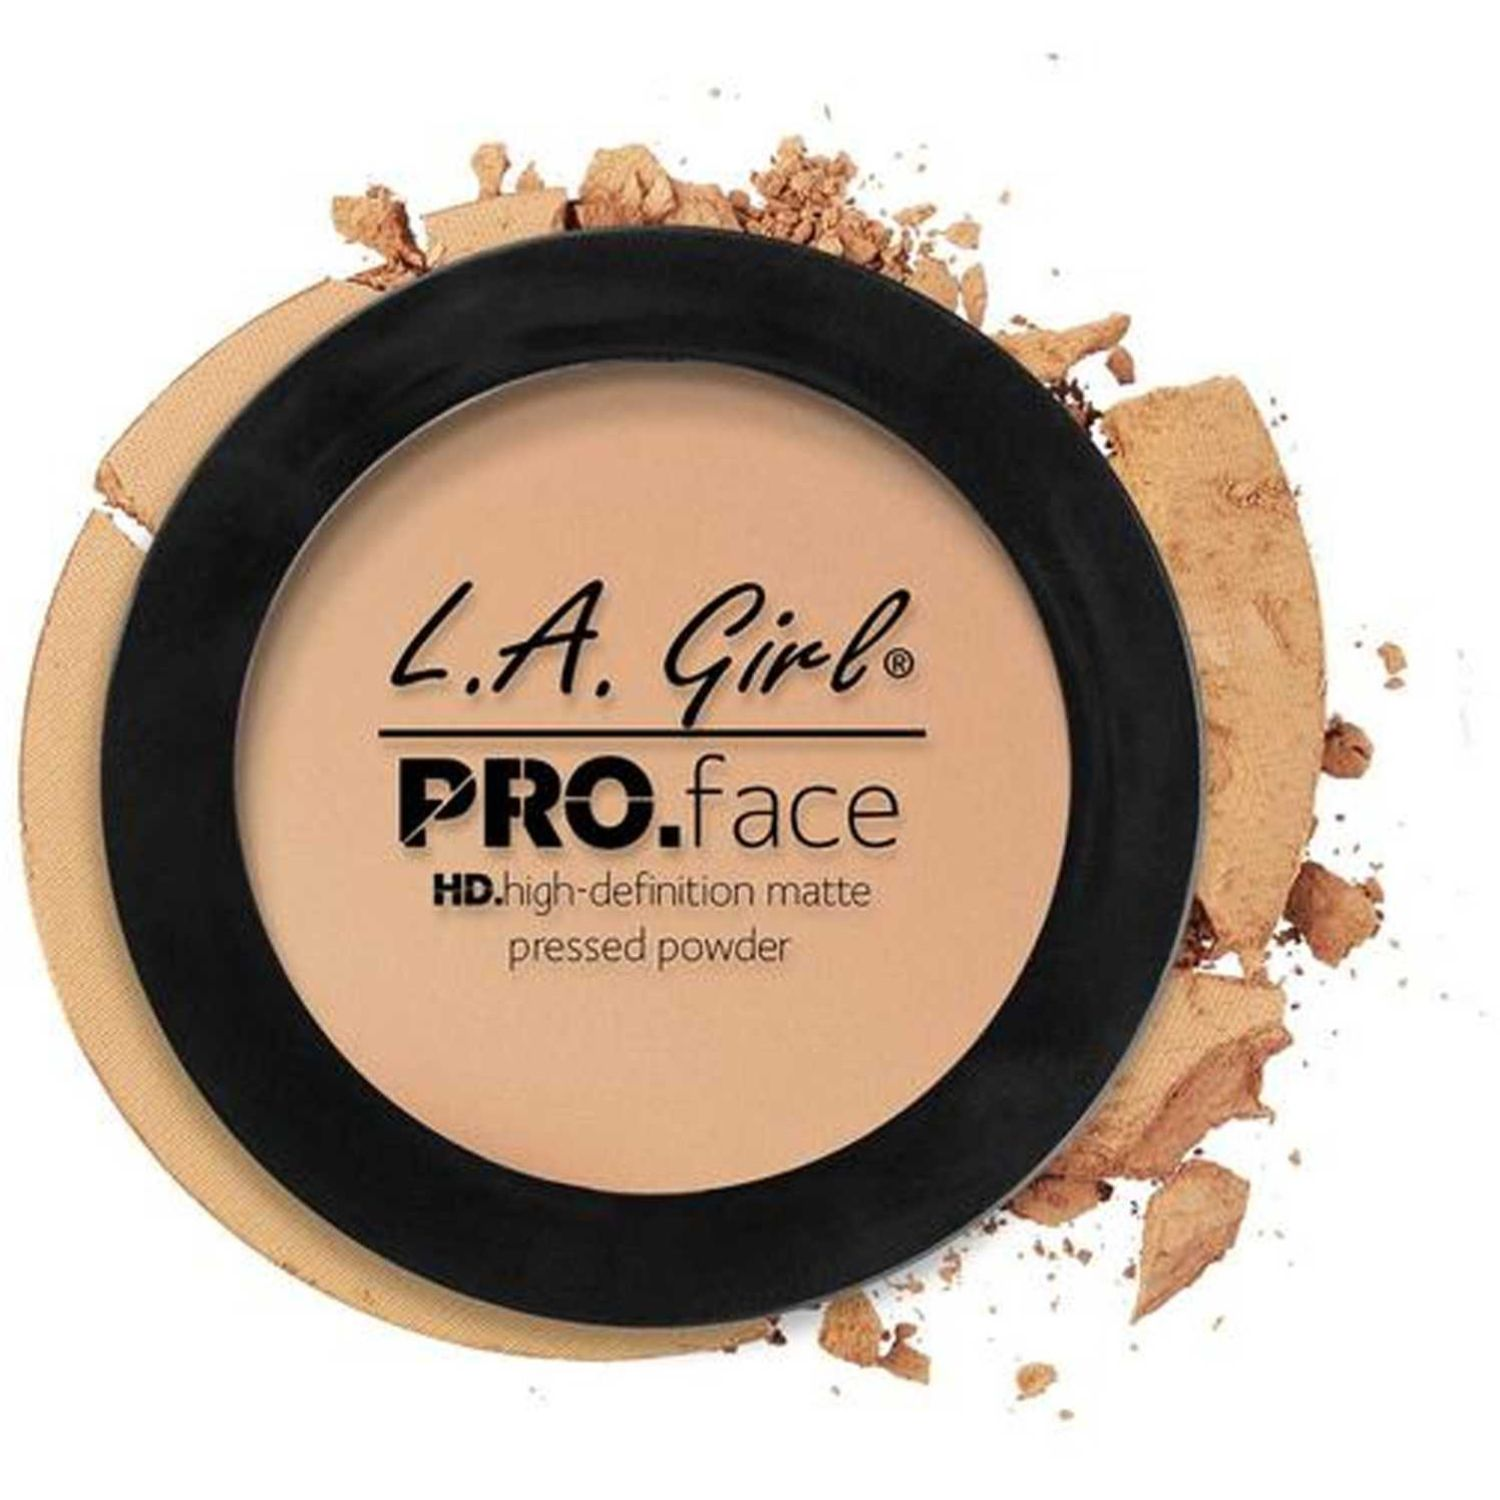 L.a. Girl Pro Face Matte Pressed Powder Nude Beige Correctores